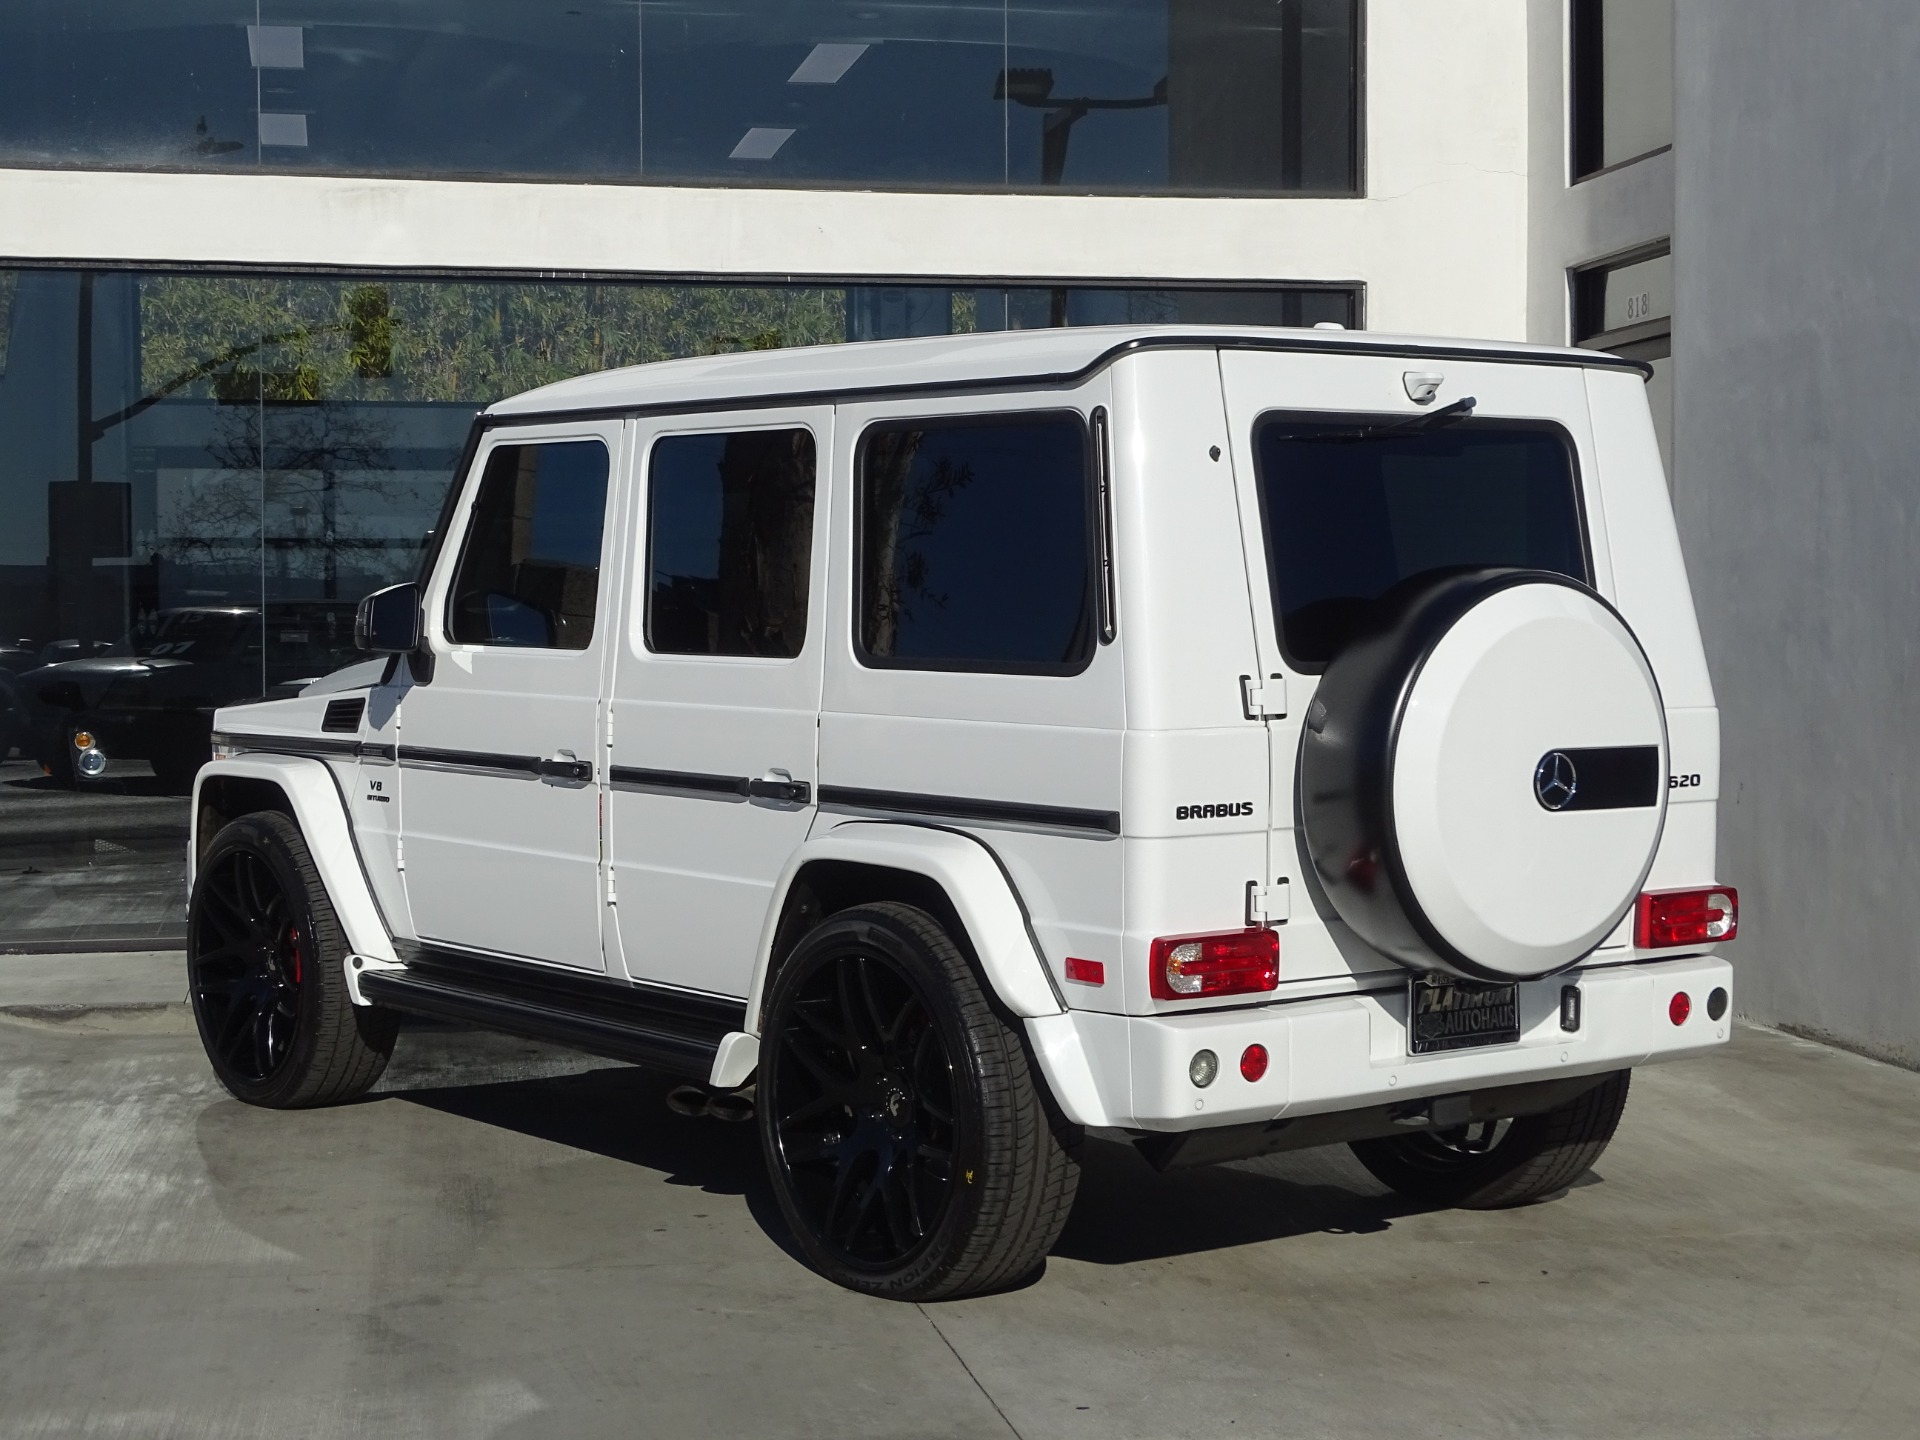 Used-2015-Mercedes-Benz-G-Class-G63-AMG--***--FULL-BRABUS-PACKAGE-***